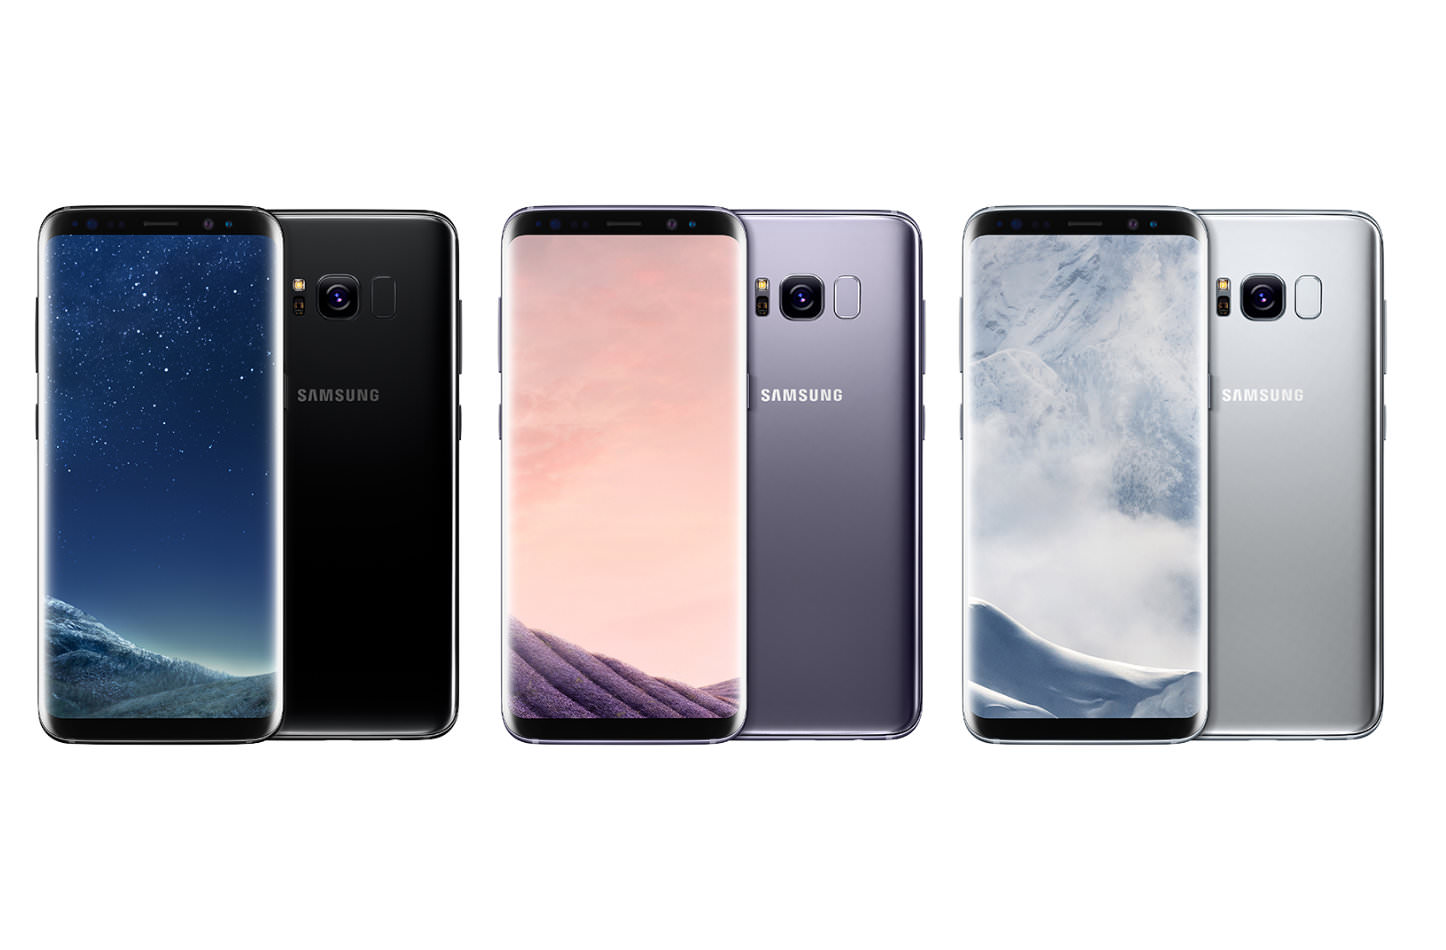 Galaxy S8 Press Images